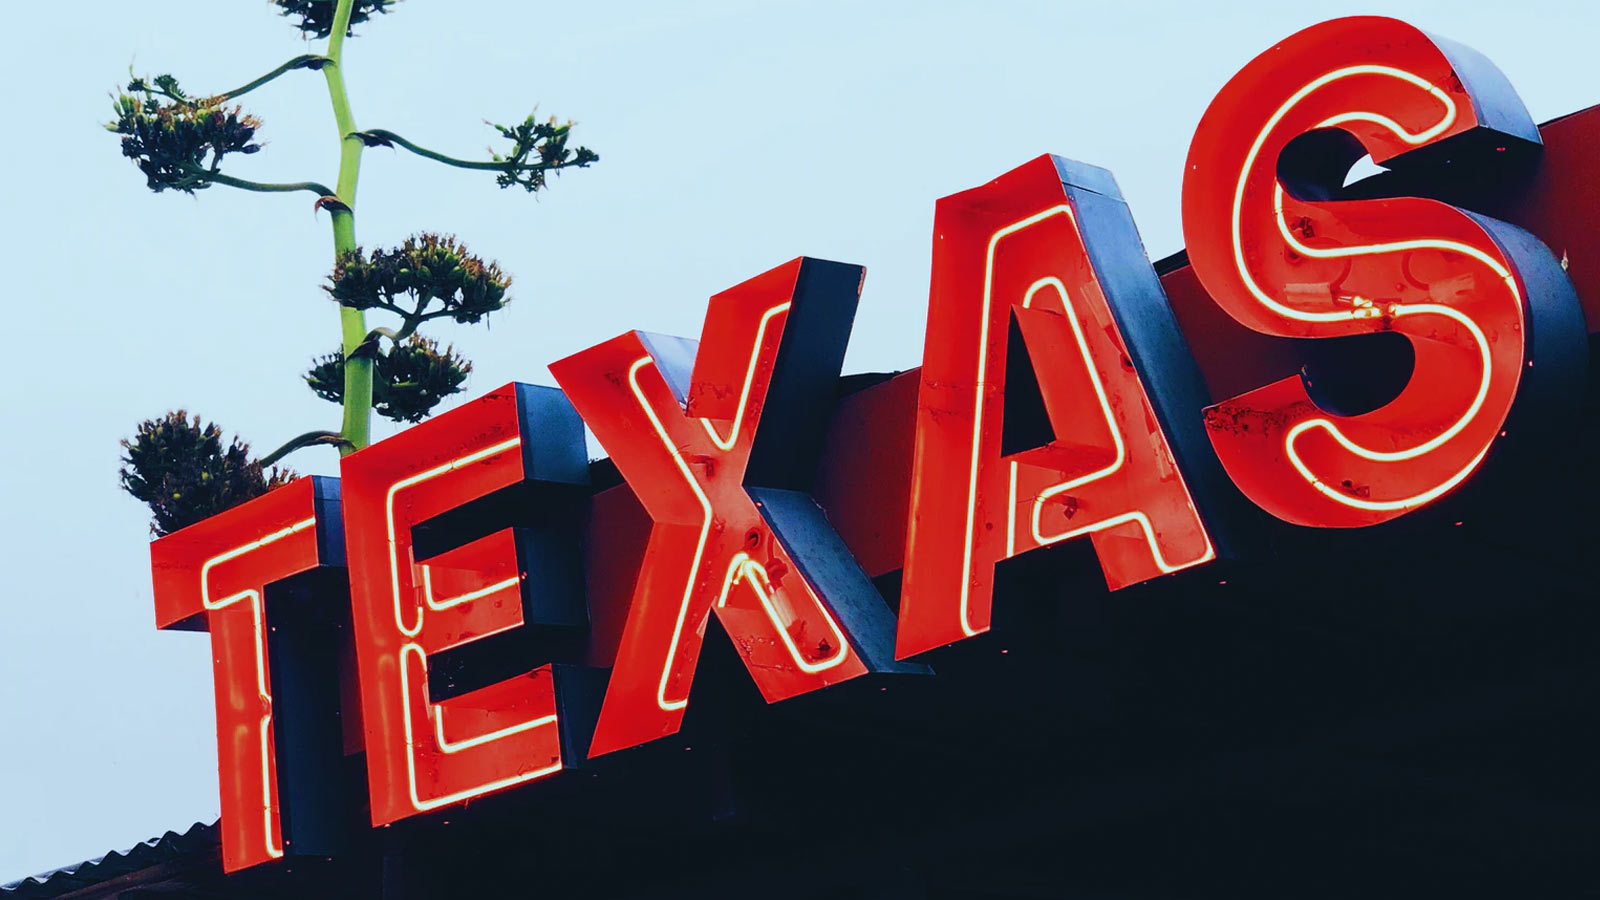 Sign of the word Texas